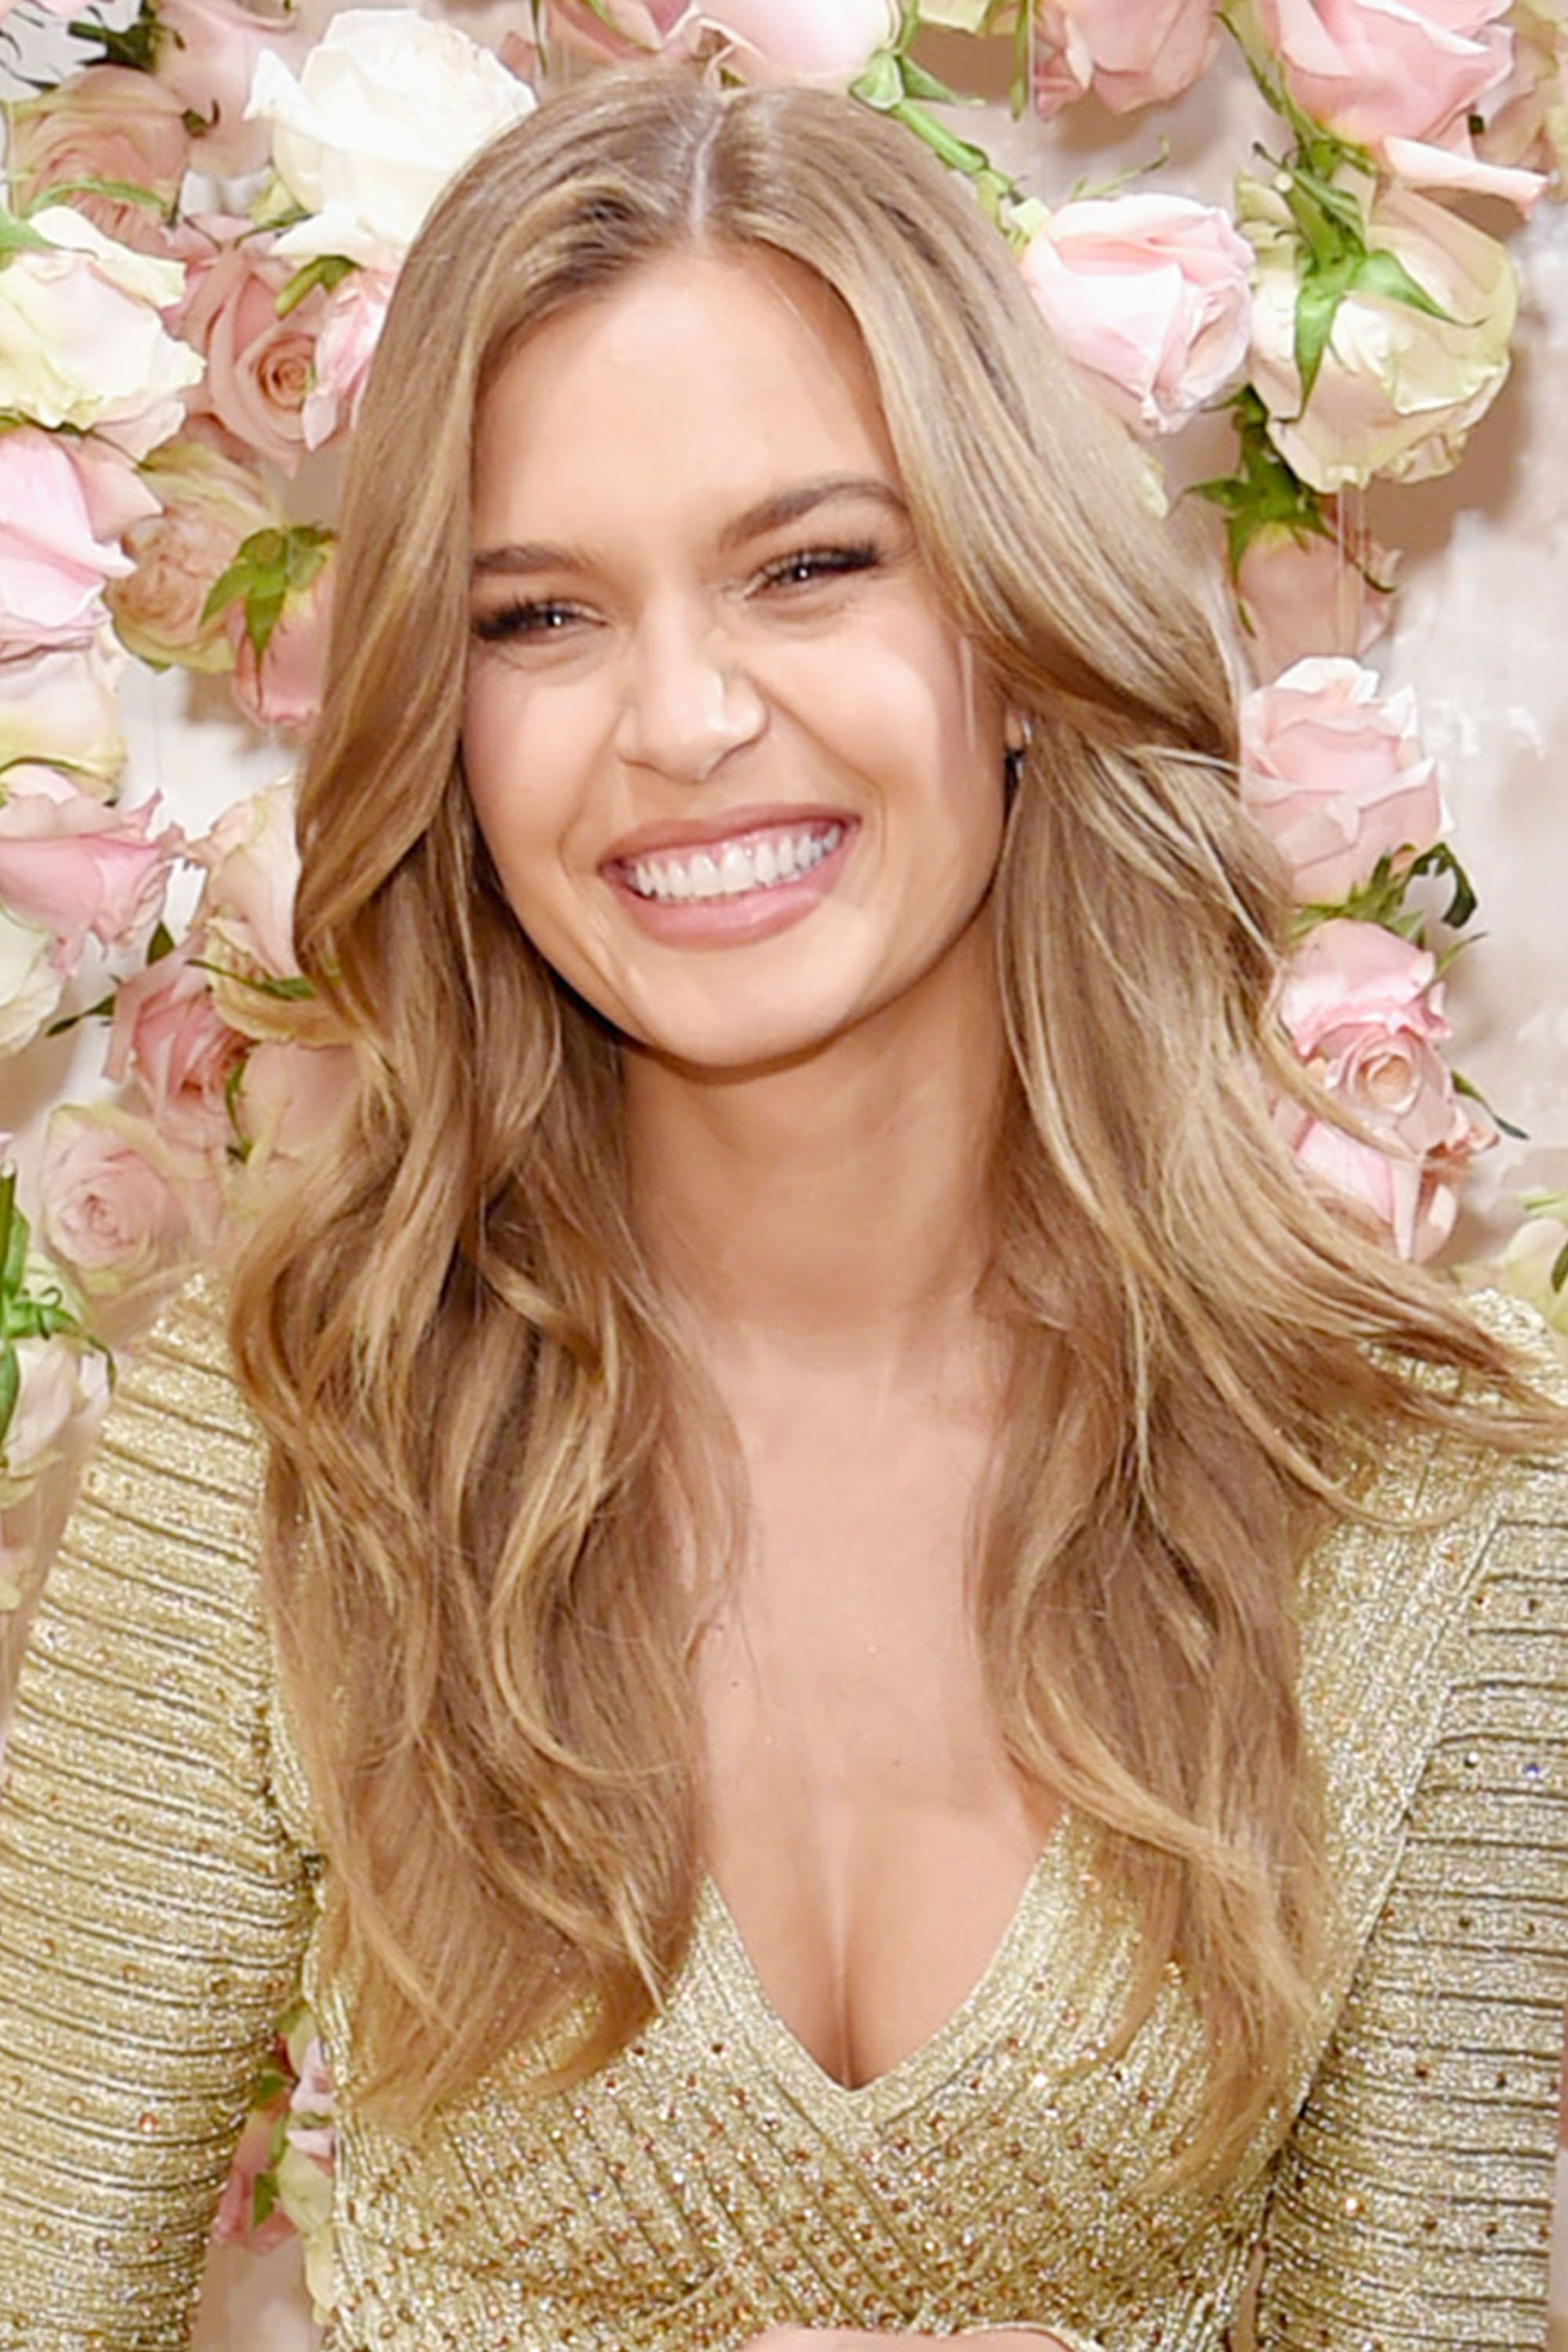 2017 S Honey Blonde Hair Color Shades Dirty Blonde And Honey Blonde Celebrities